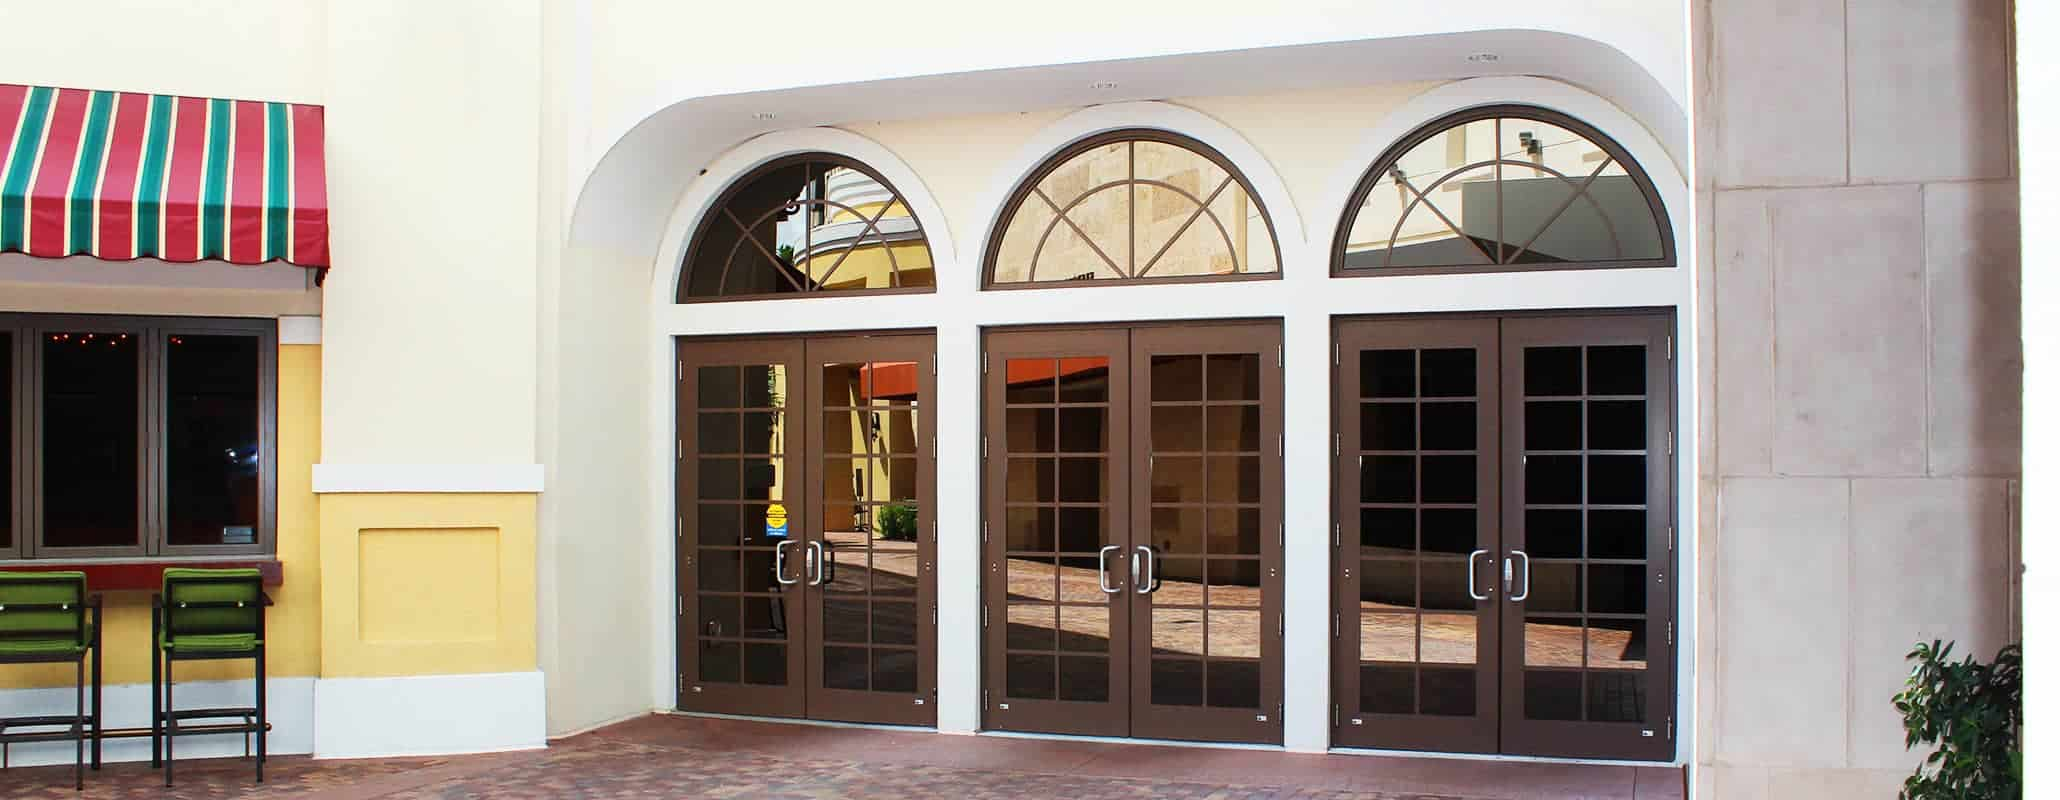 An exterior view of three Aldora impact glass doors with brick paved walkway in front and seating at the wall on the left.